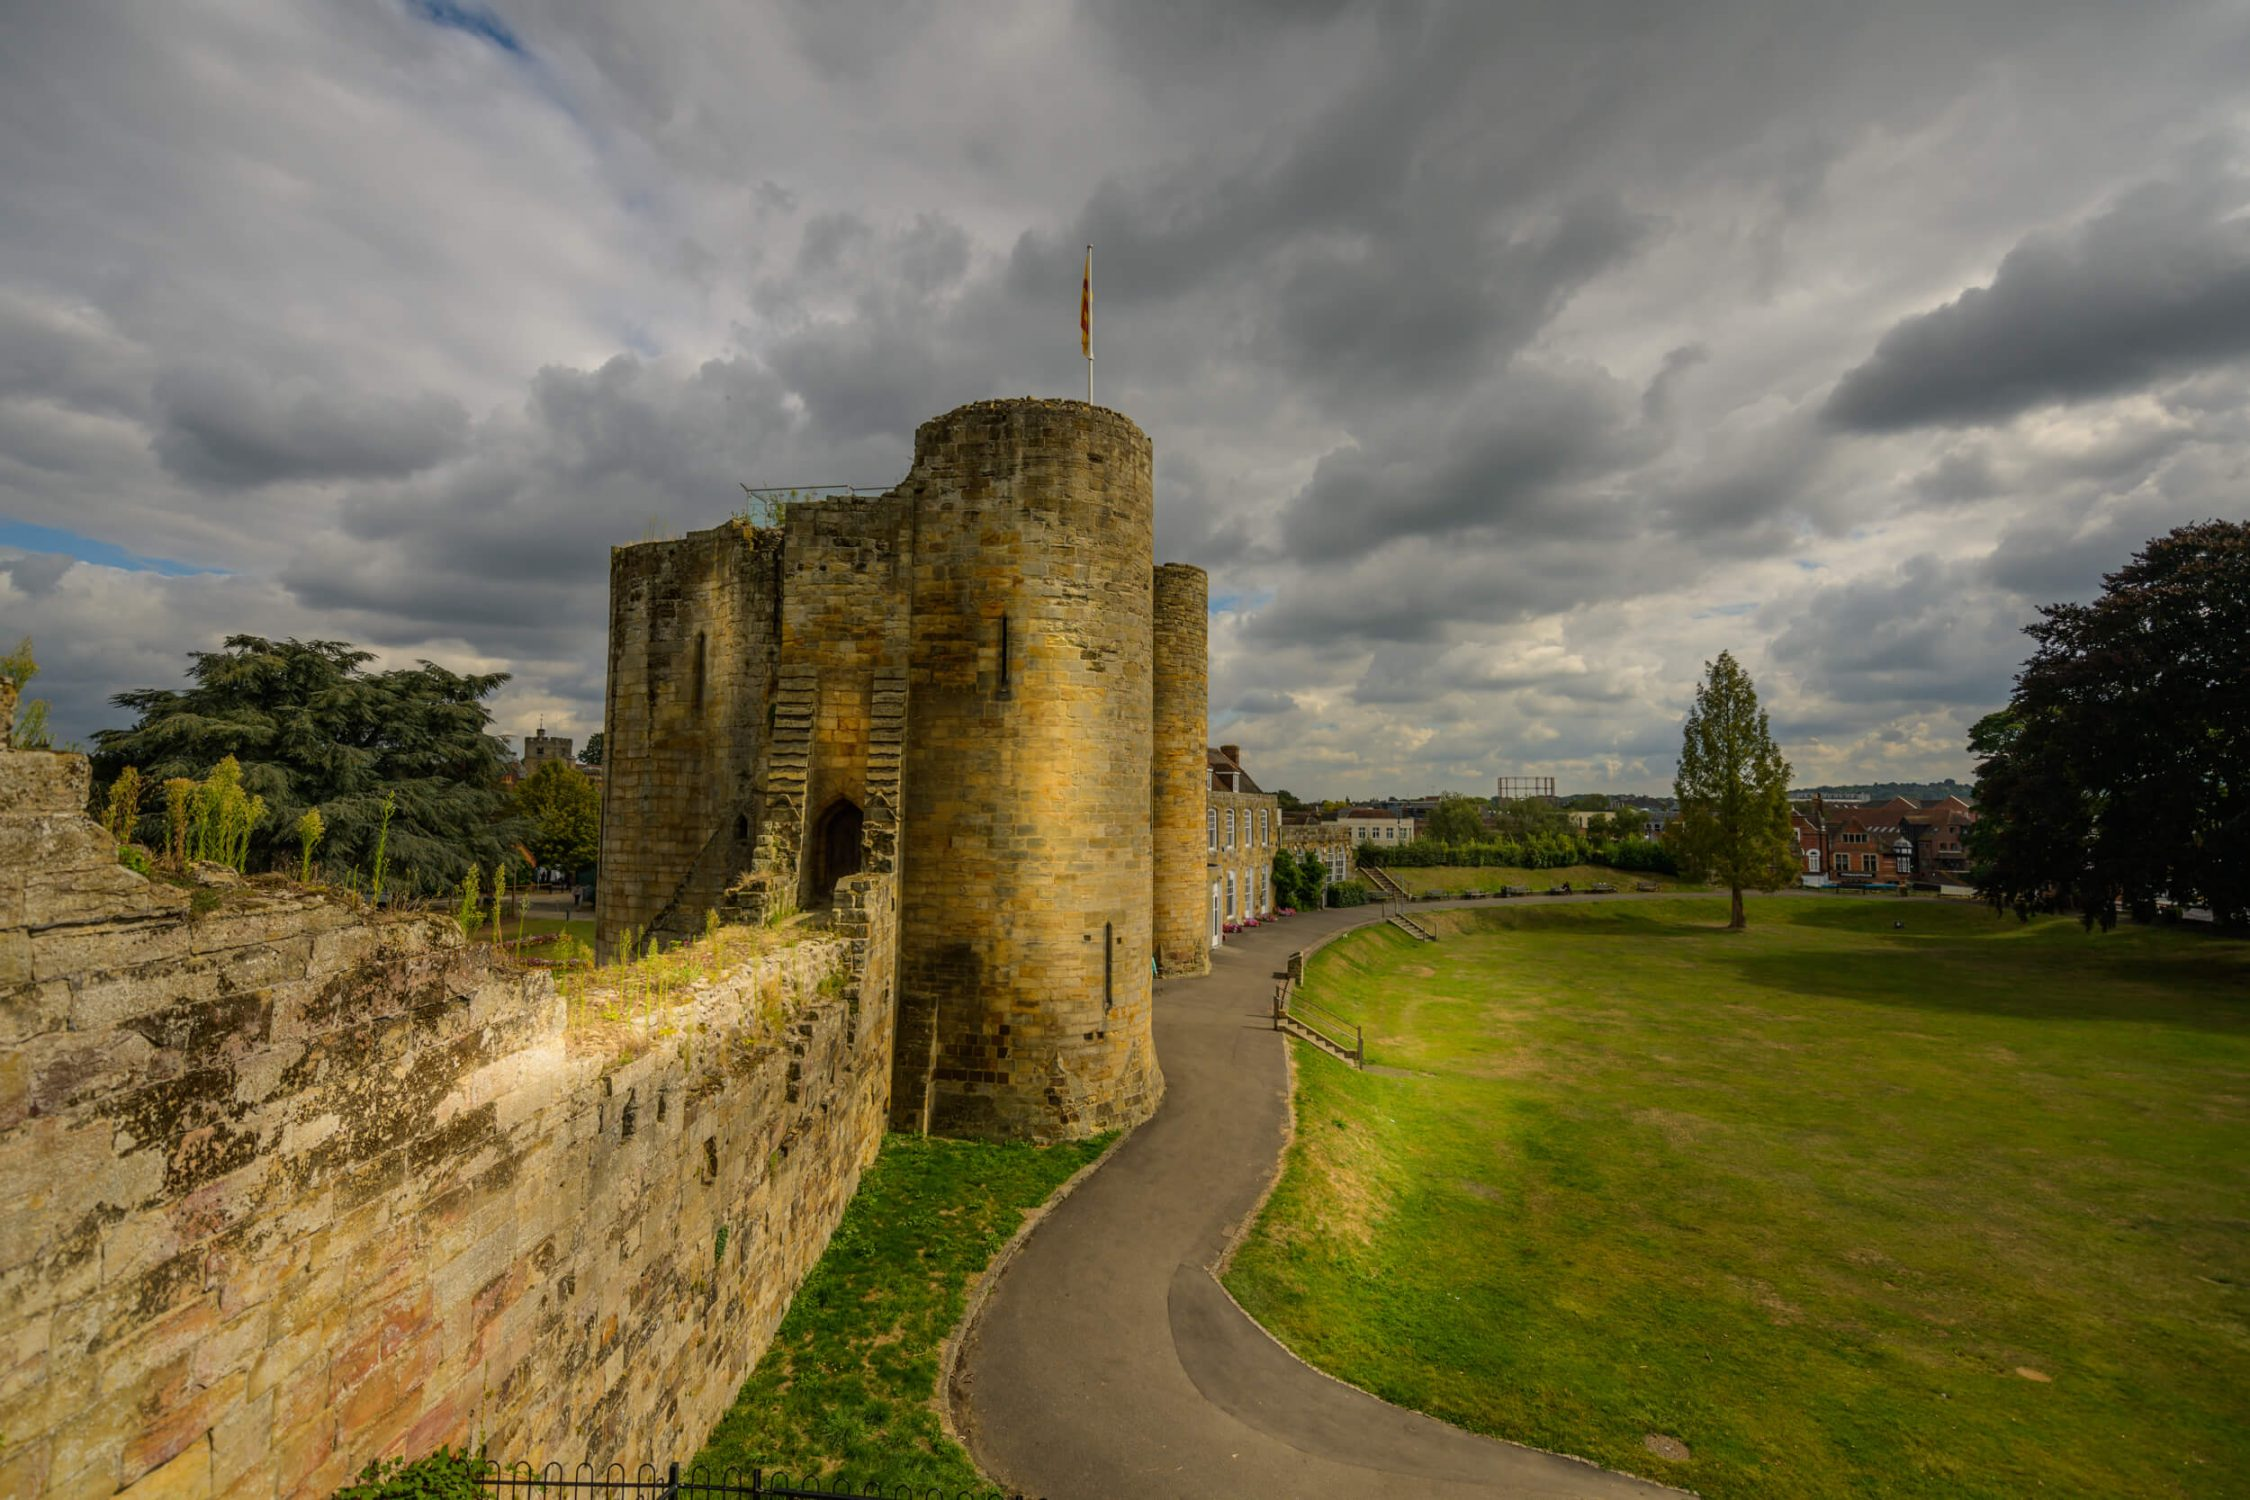 Tonbridge Castle walls